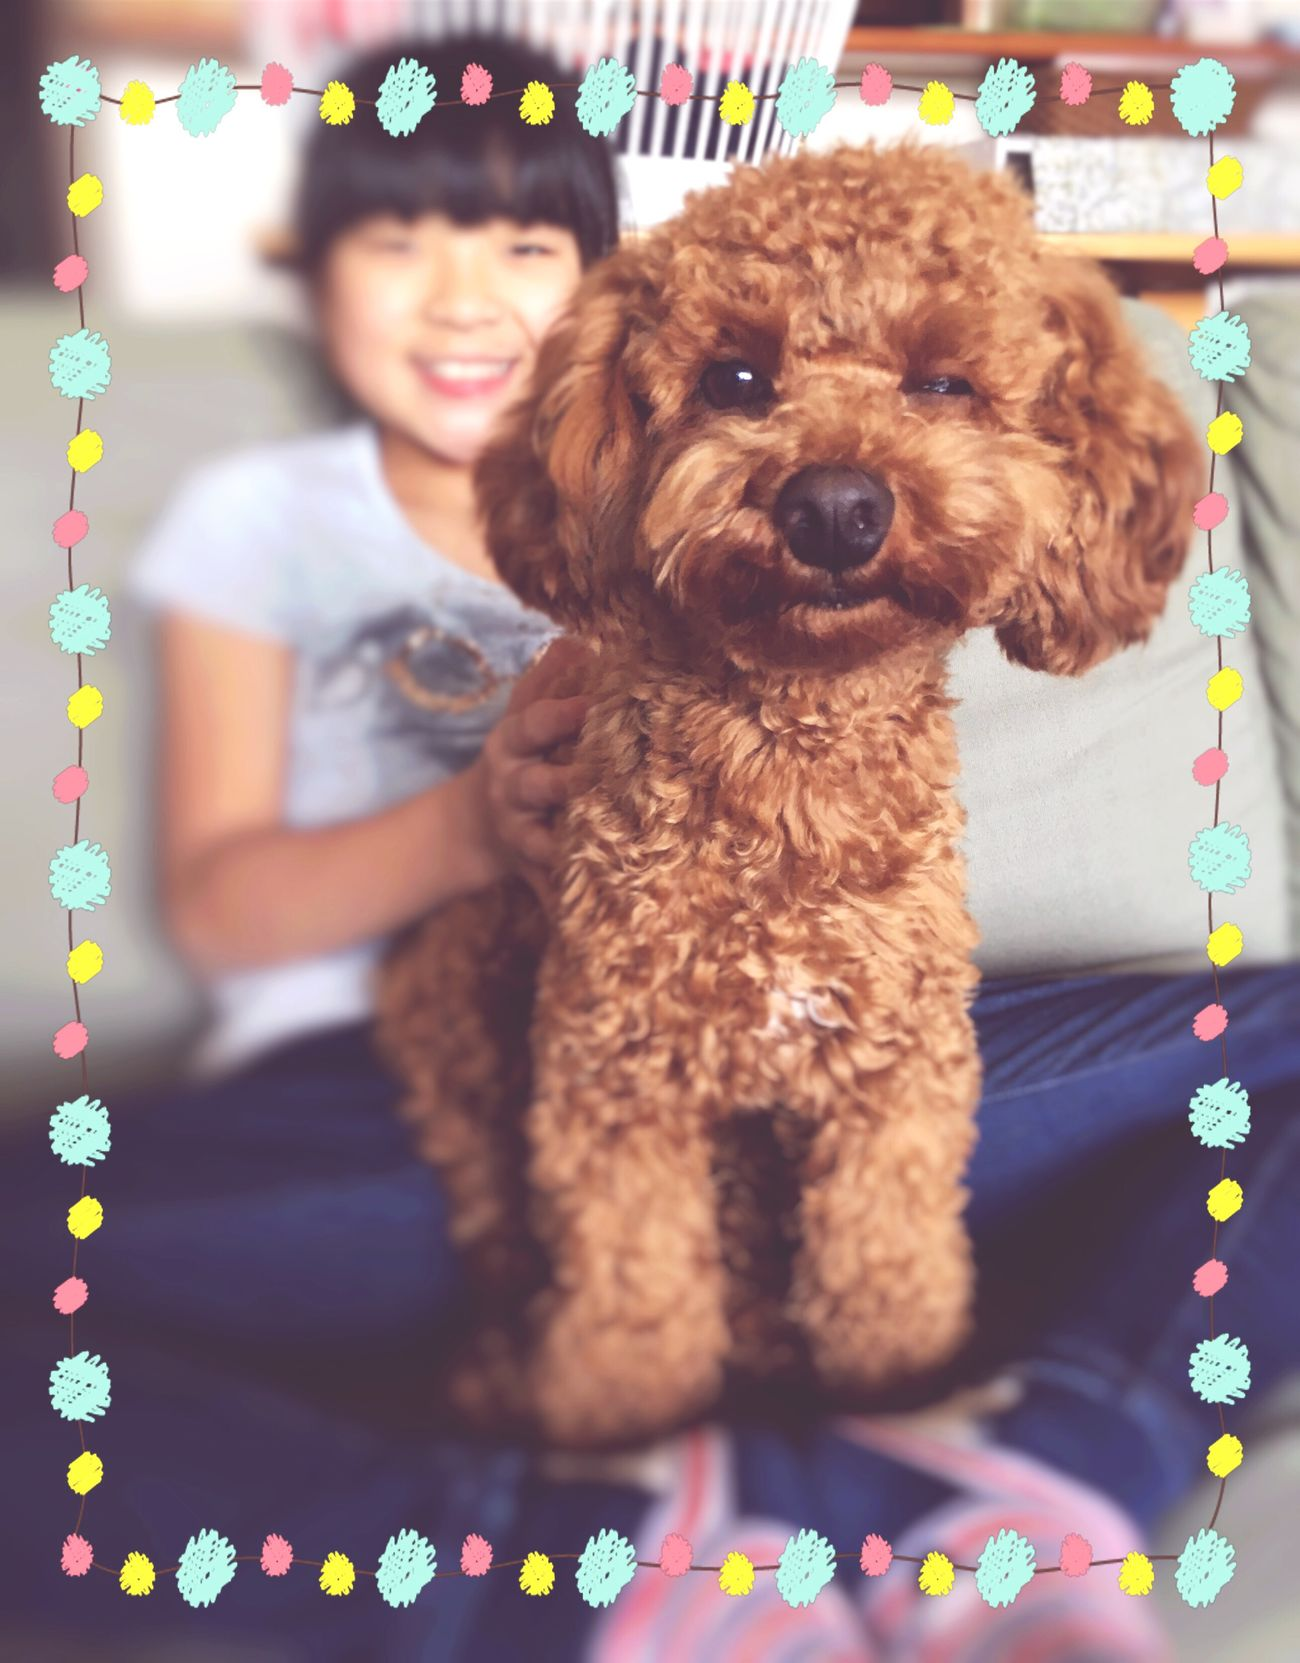 Wink Dog Pets Poodle Toypoodle Smile 😚 One Animal Looking At Camera Smiling チロル Miracle Miracleshot なんか笑ってるような口元❣️